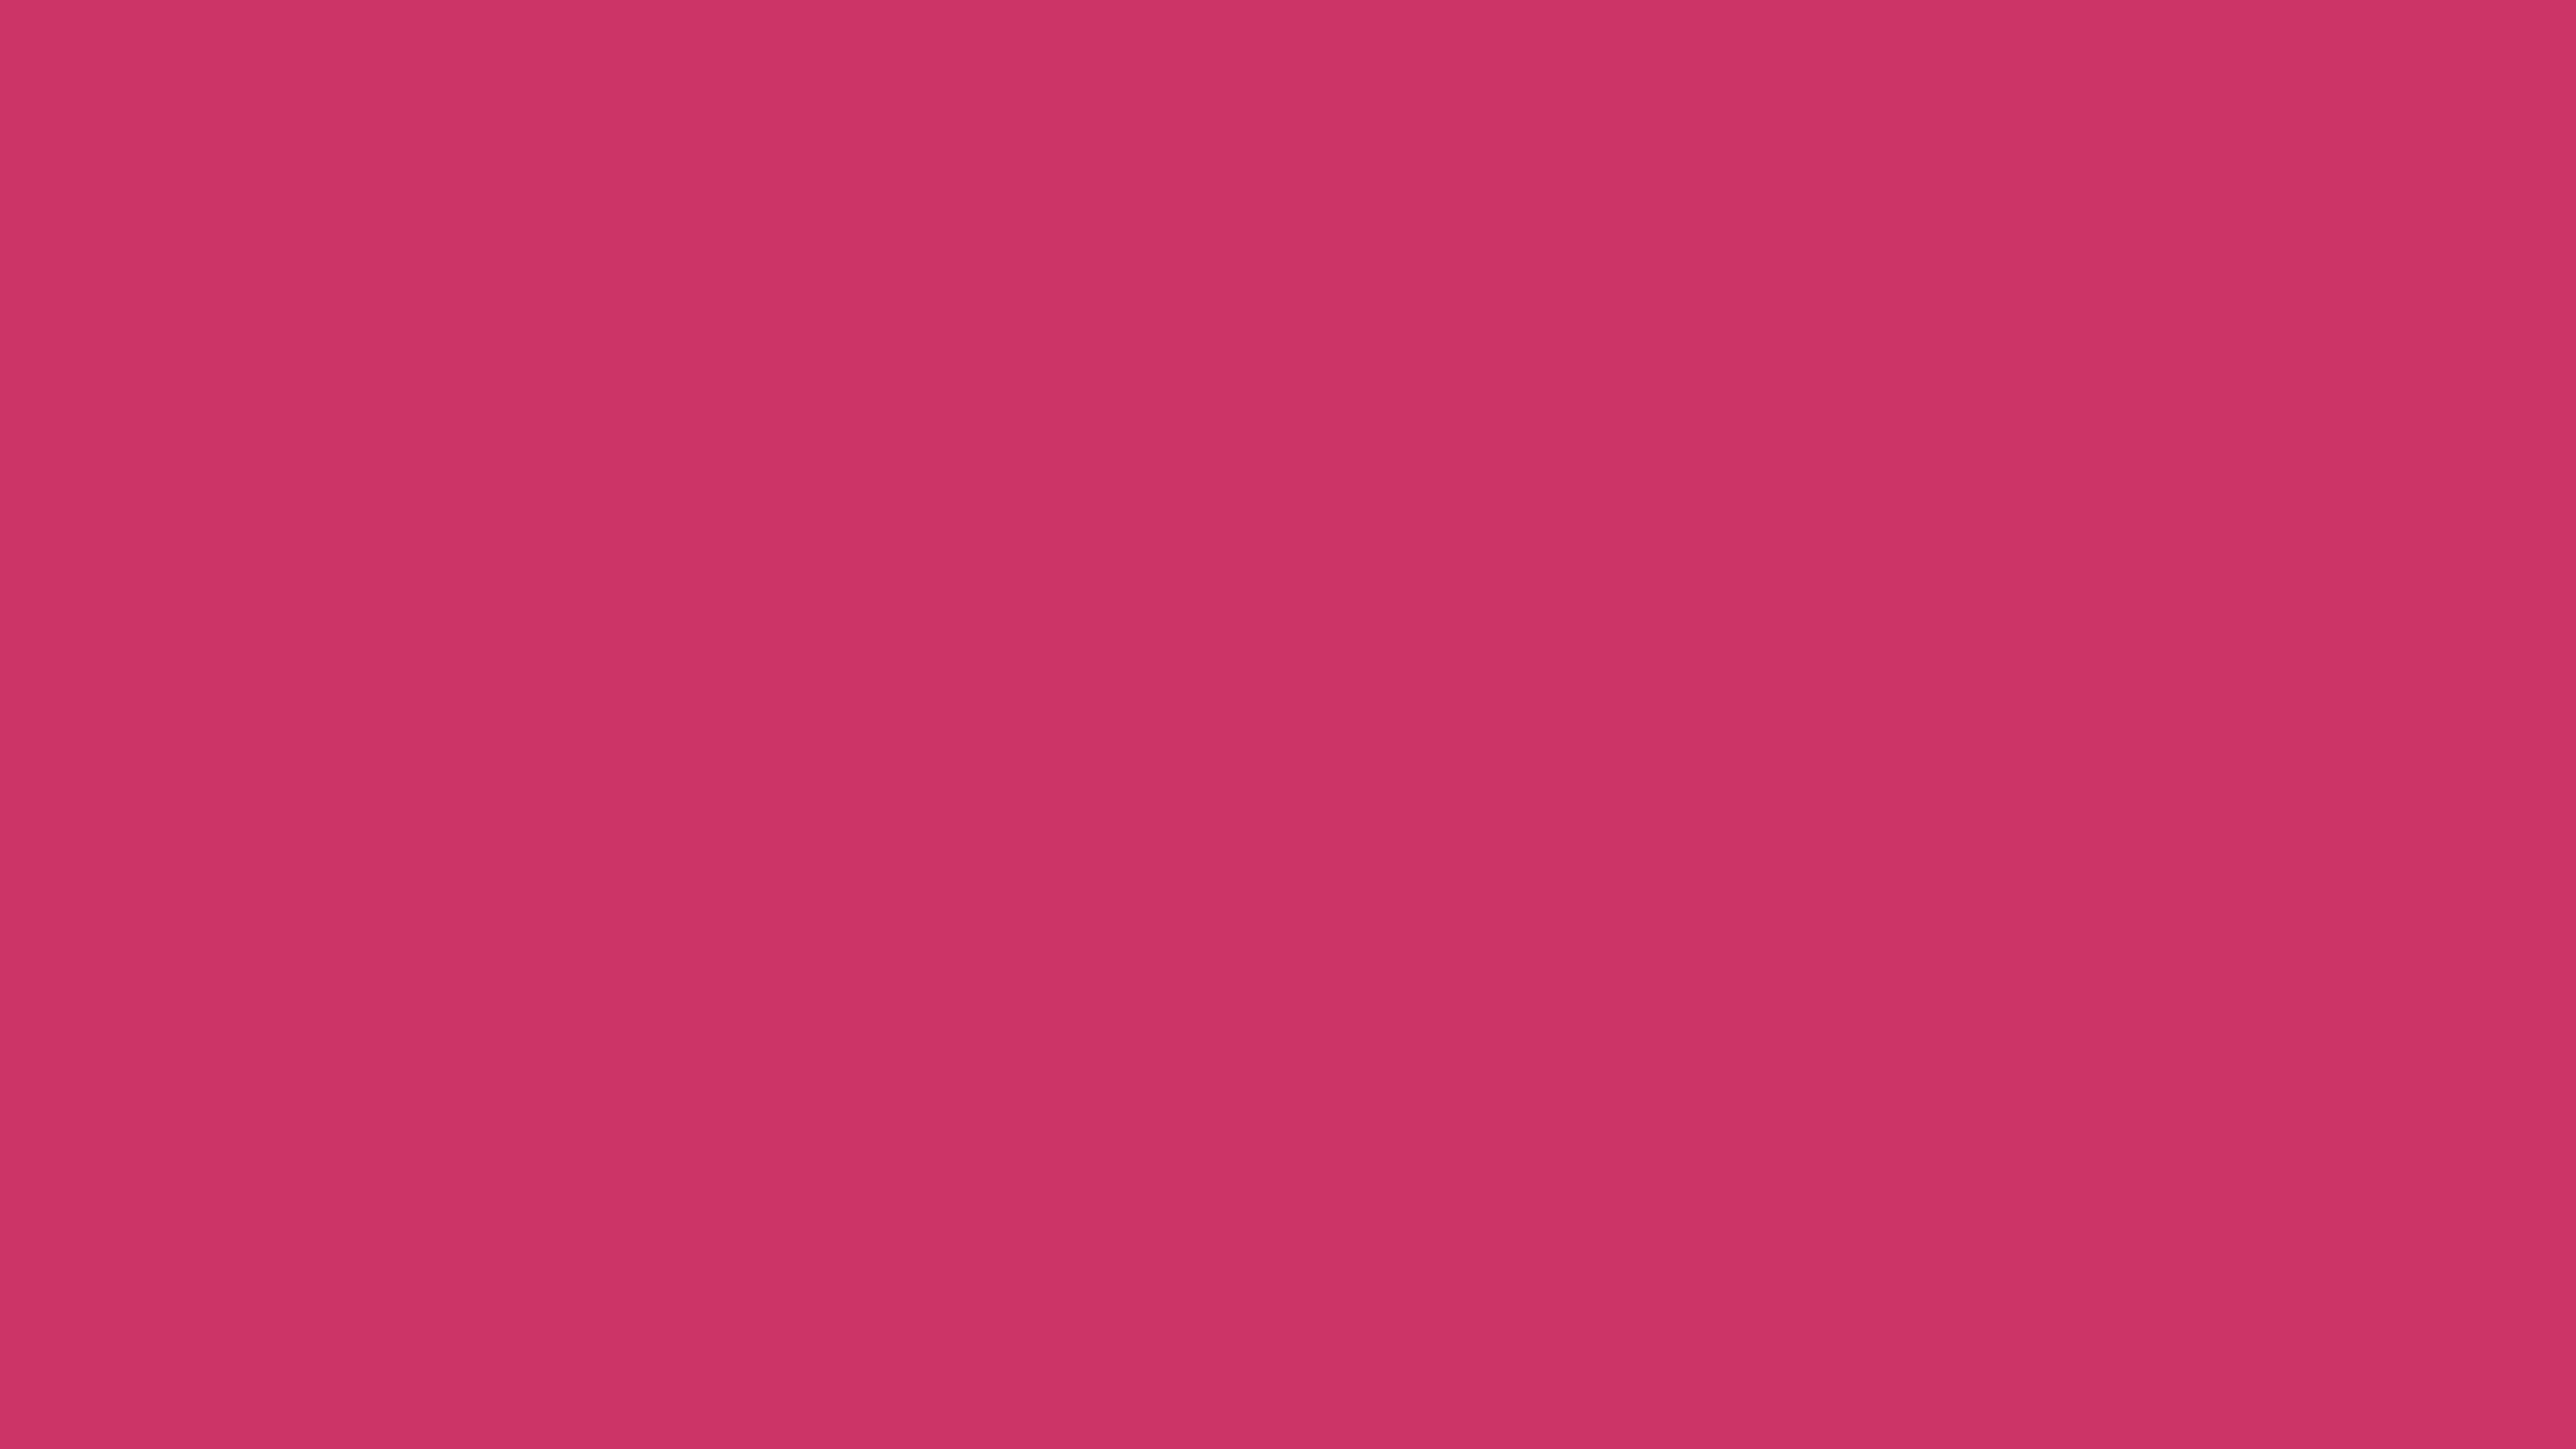 4096x2304 Steel Pink Solid Color Background